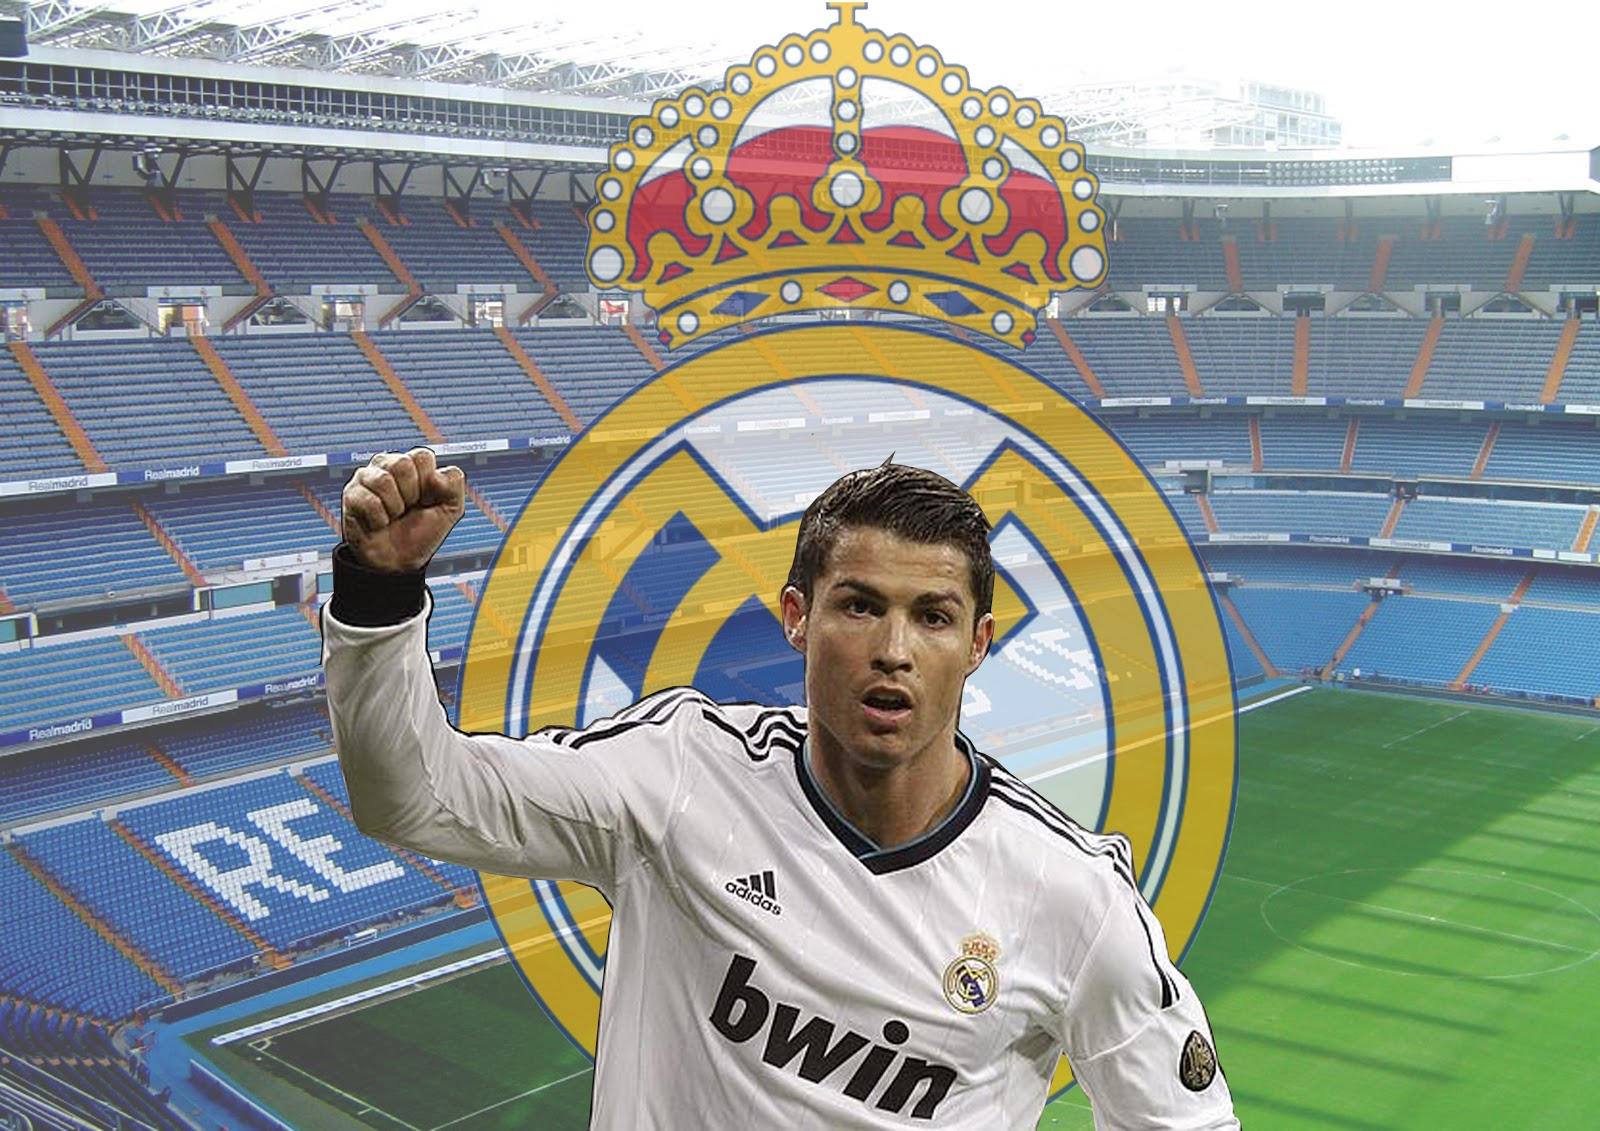 Whats up deportes for Juego del madrid hoy